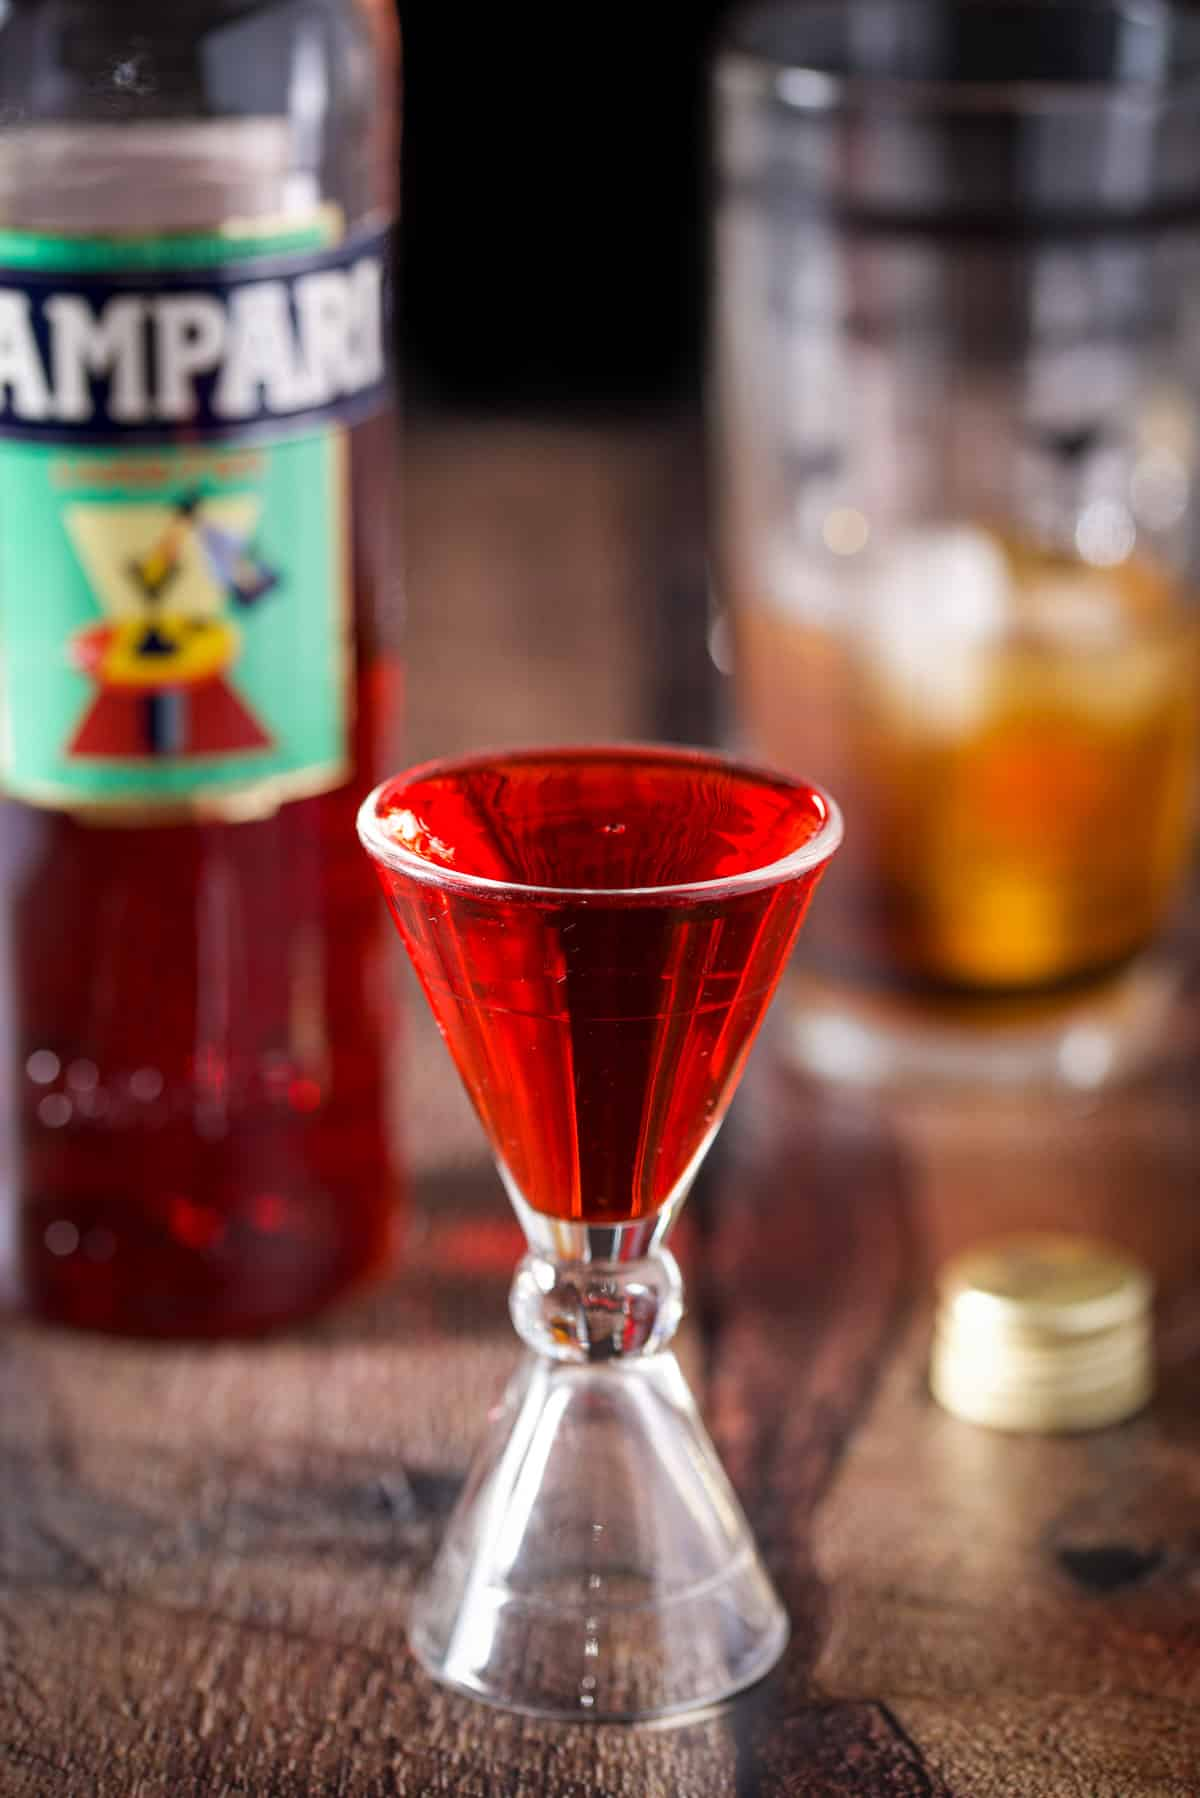 Campari measured out with the bottle and shaker in the background